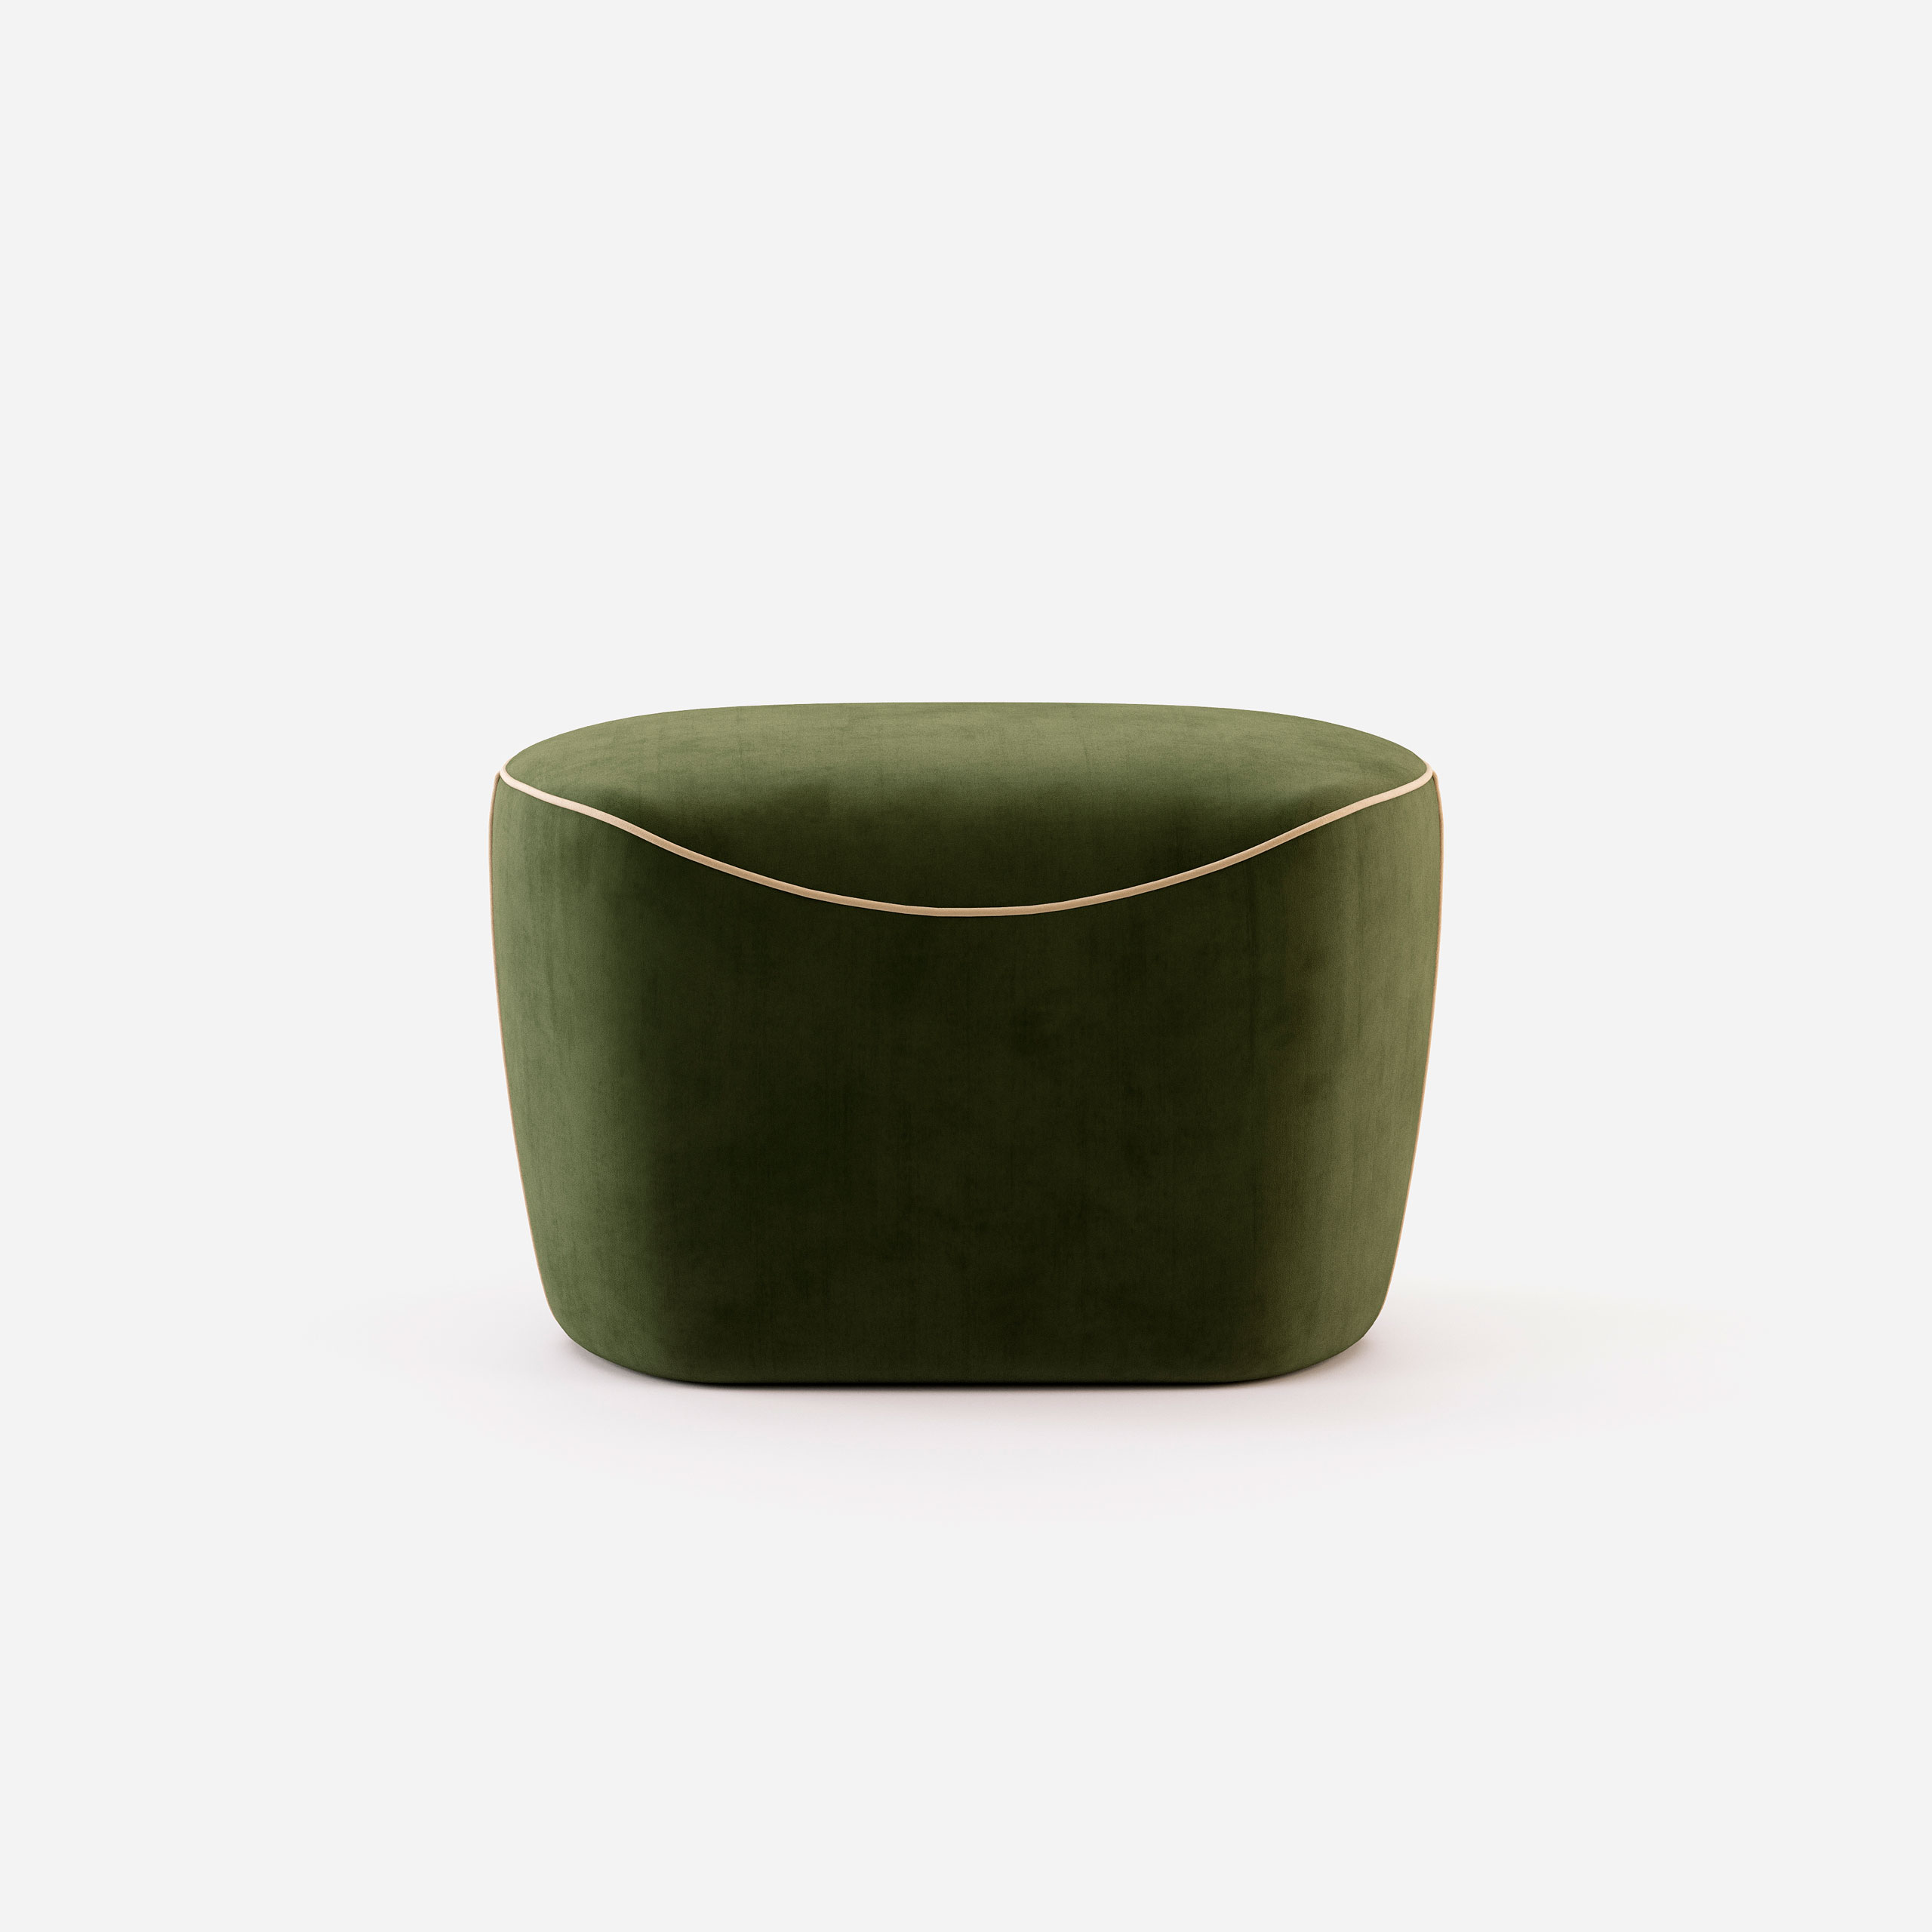 capsule-pouf-domkapa-new-collection-2021